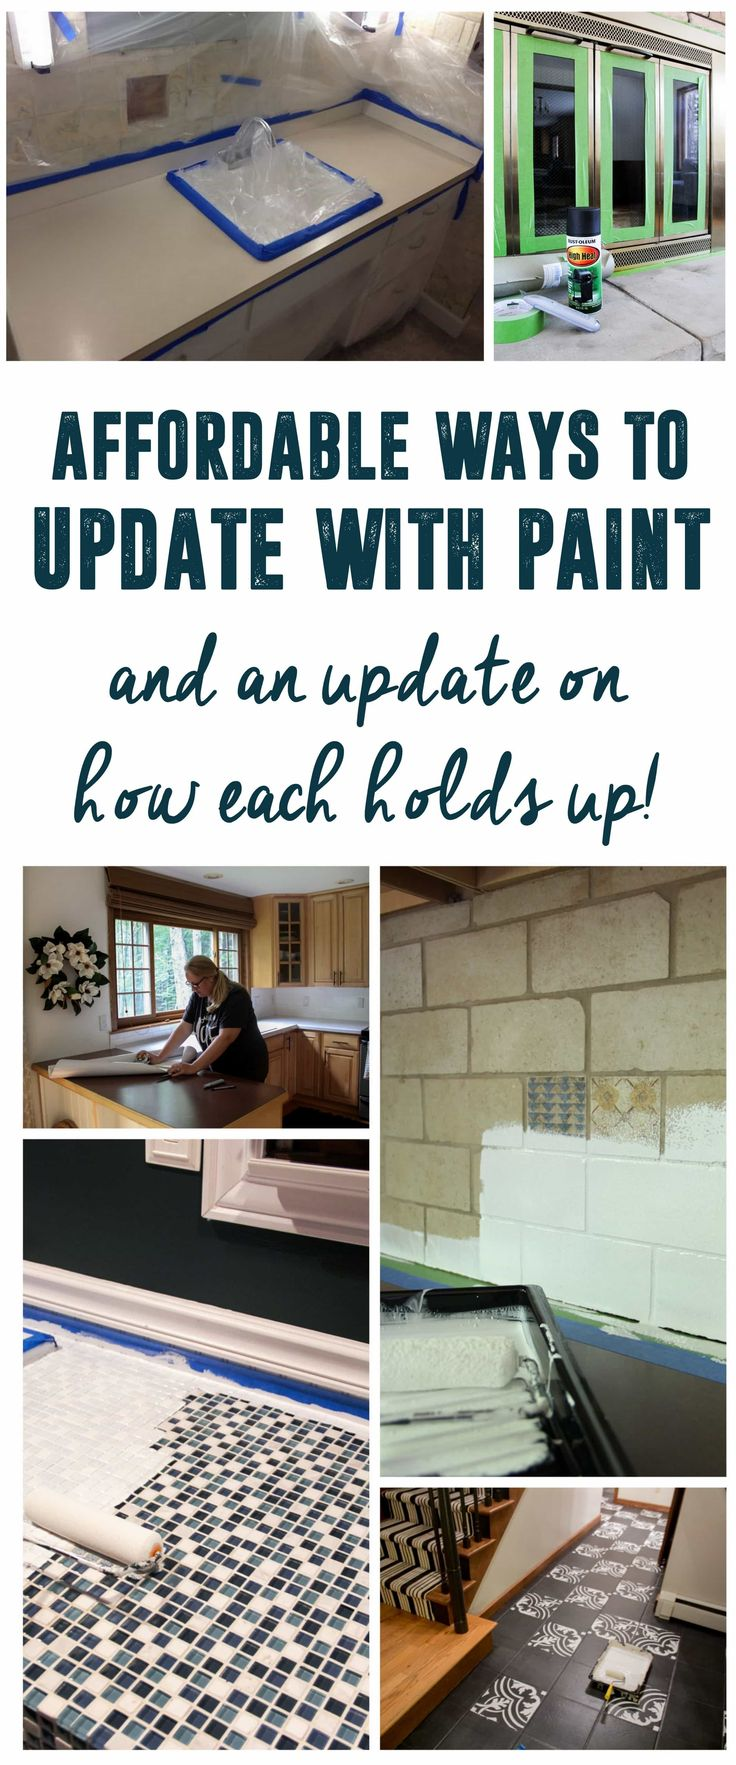 How's it Holding Up??? How is it holding Up, How did the counters hold up? How did the floors hold up? Affordable Ways to Update with Paint